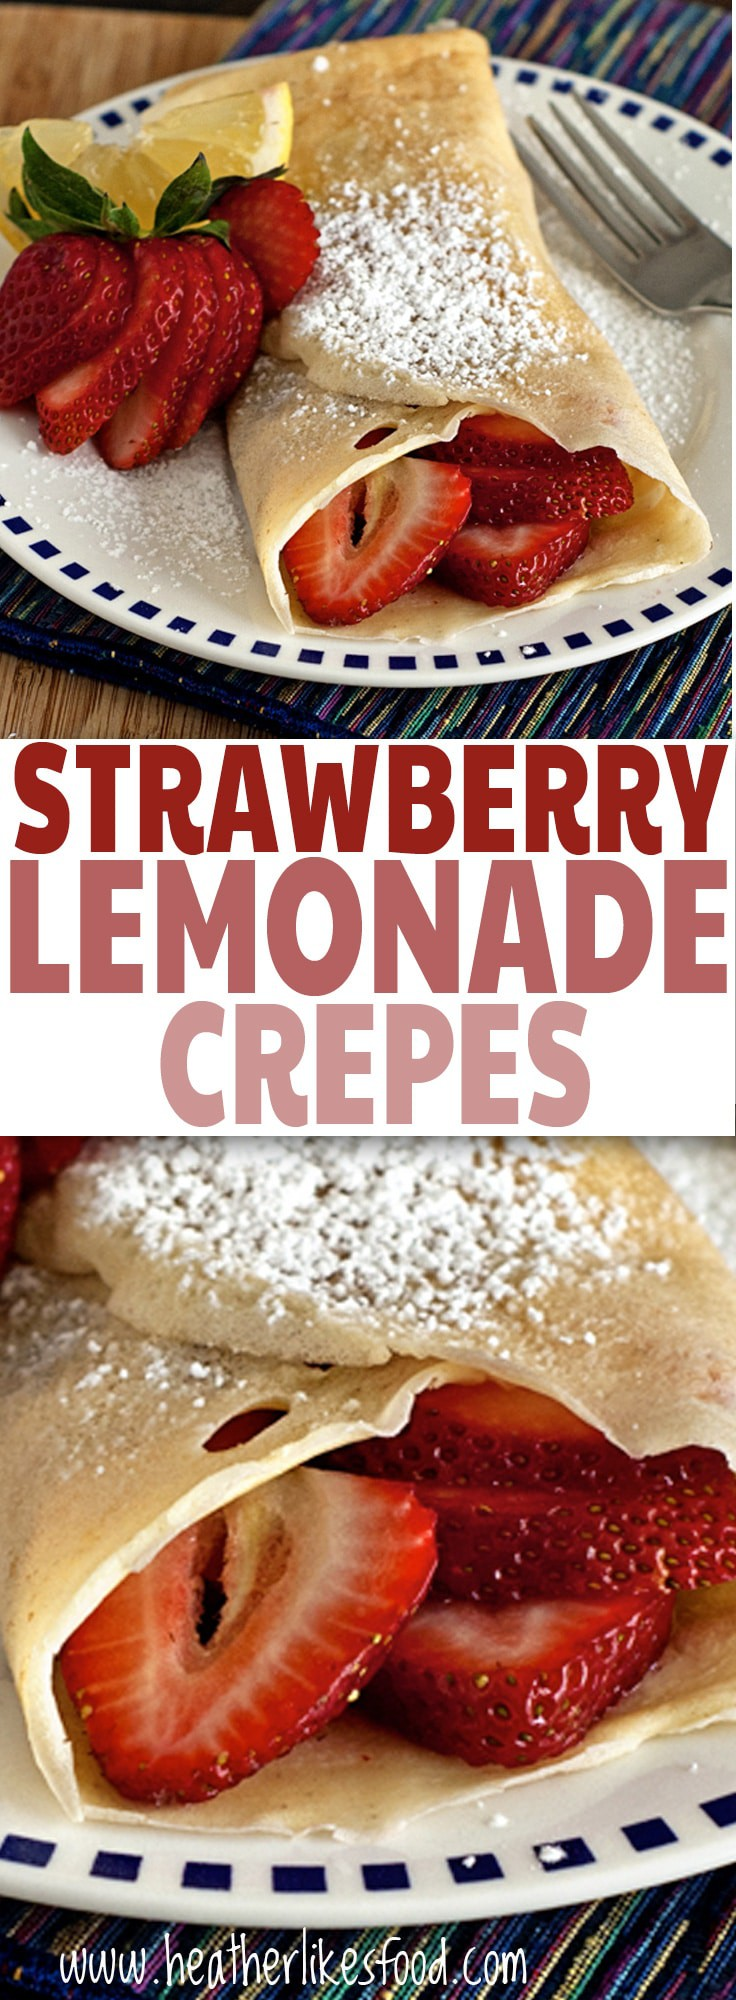 Strawberry Lemonade Crepes